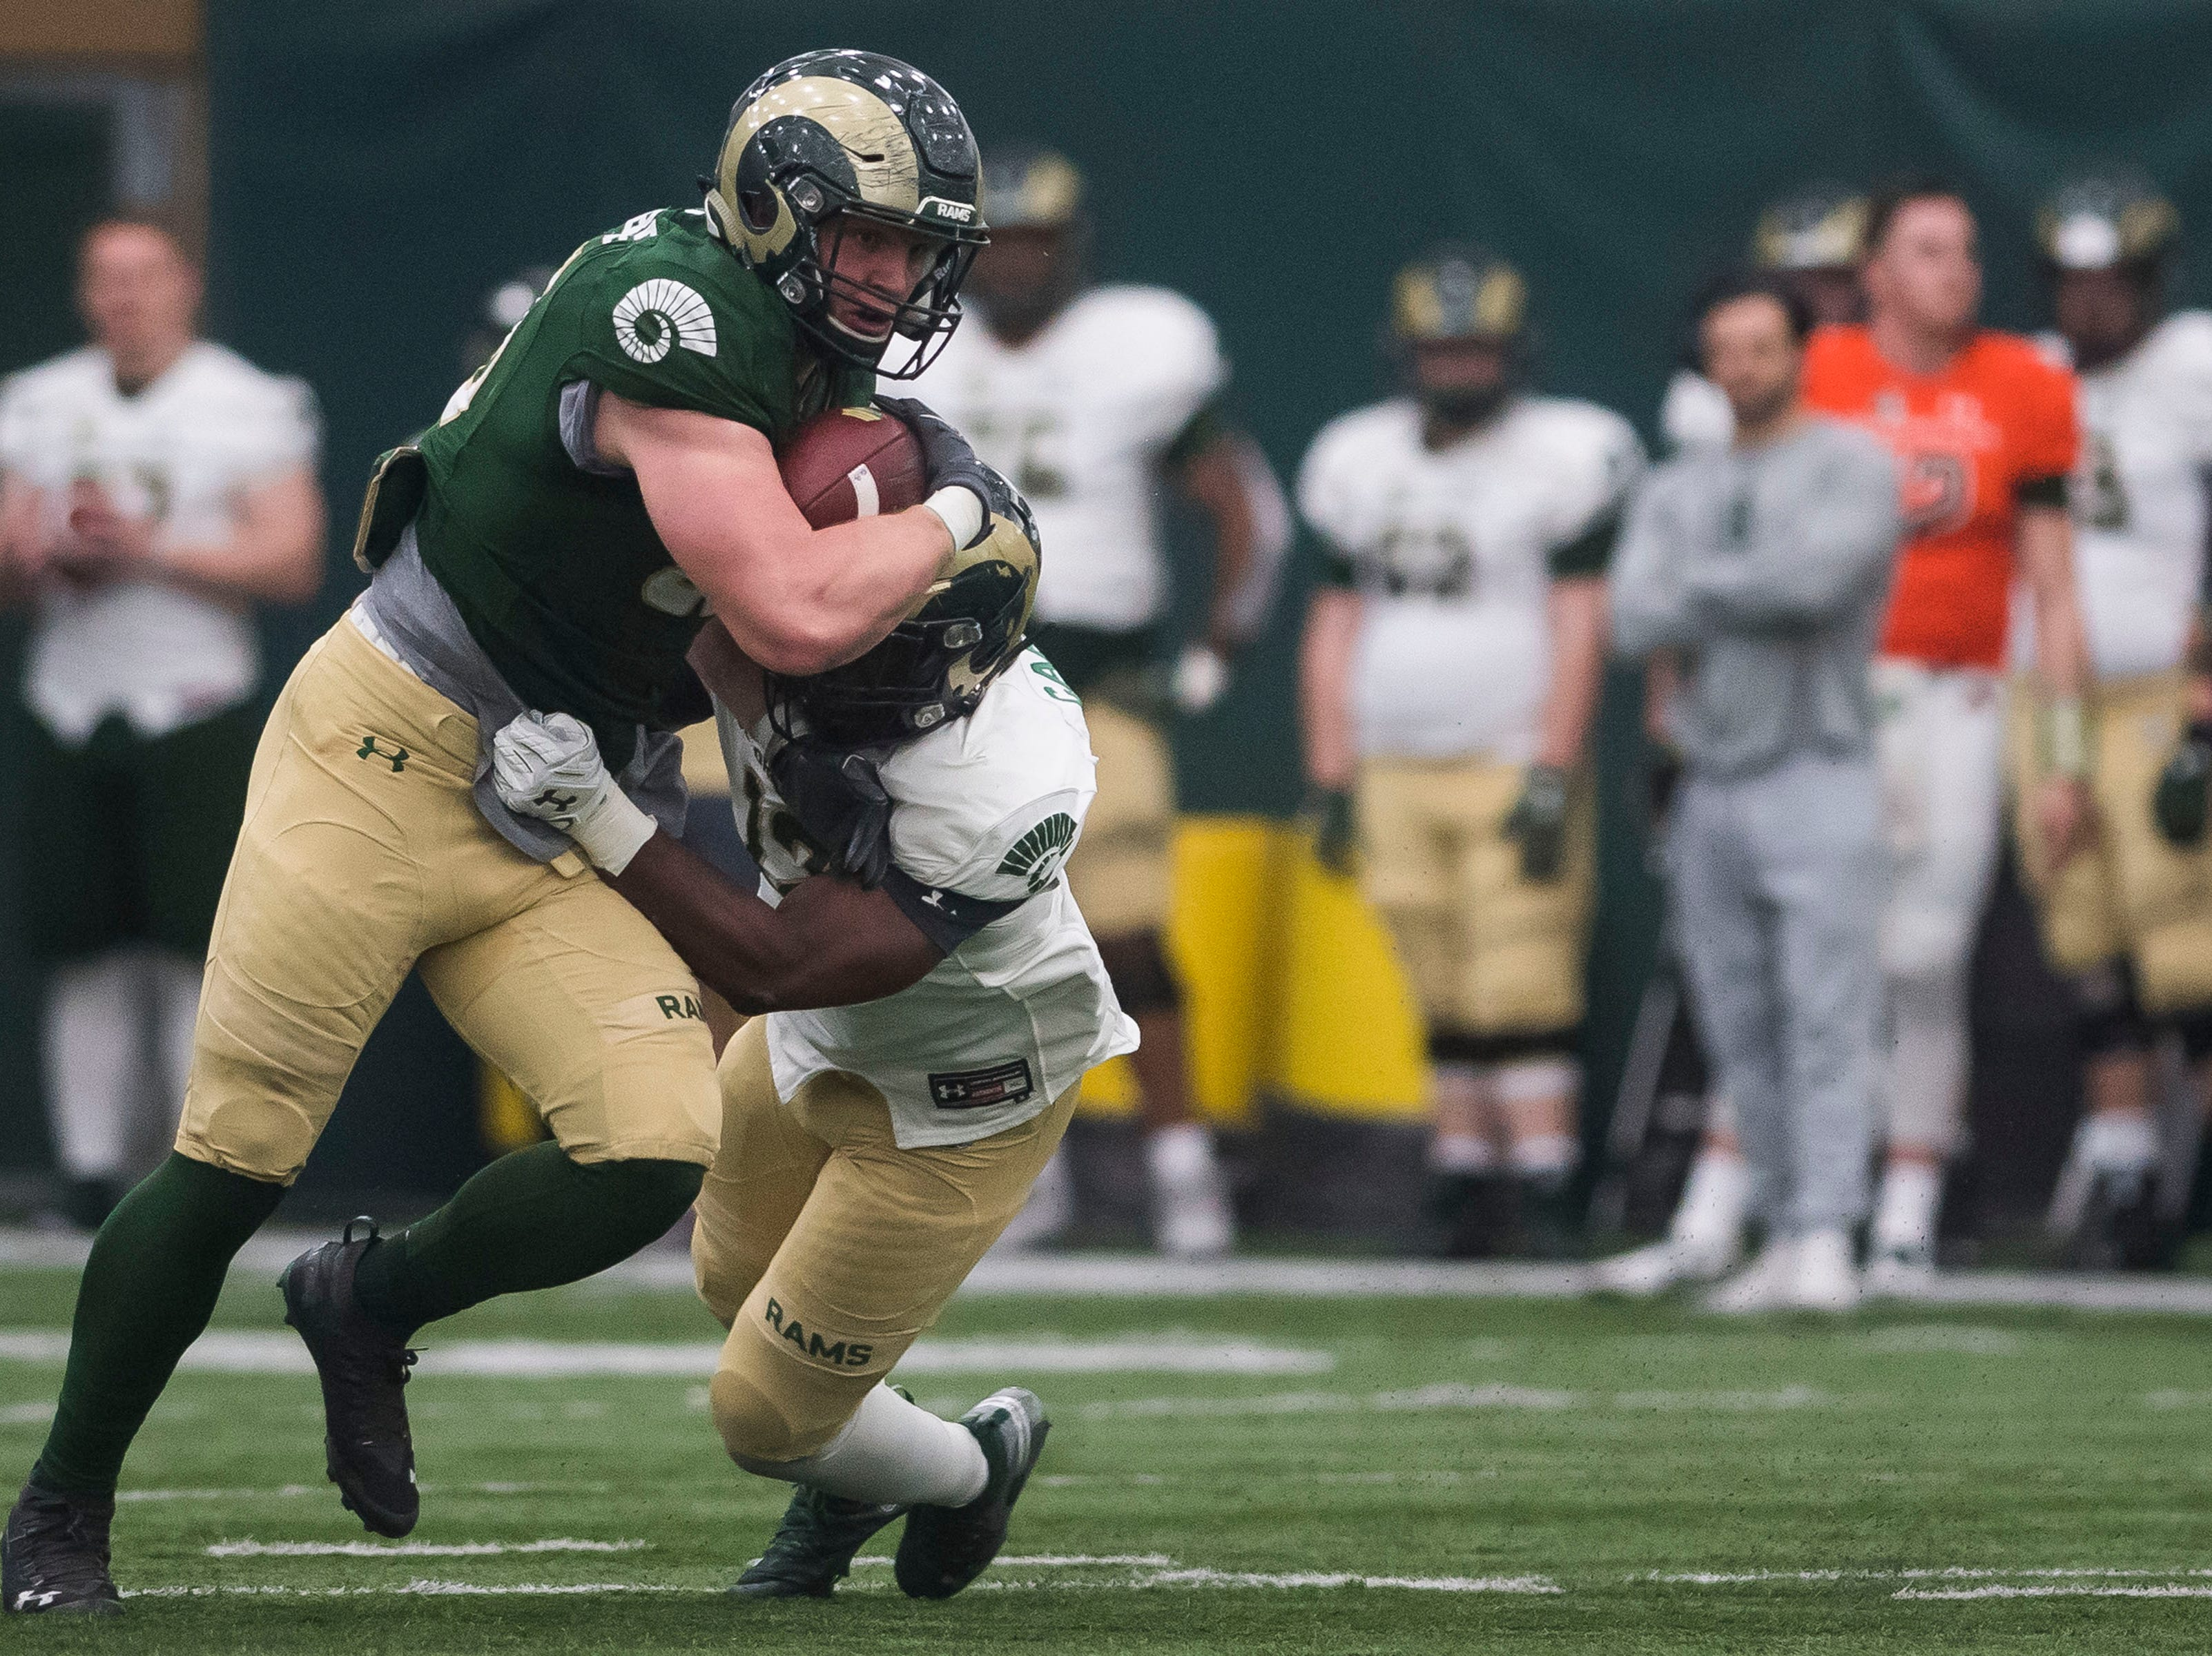 CSU sophomore tight end Trey McBride (85) is tackled by sophomore linebacker Cam'ron Carter (12) during CSU's Spring game on Thursday, March 14, 2019, at their indoor practice facility in Fort Collins, Colo.